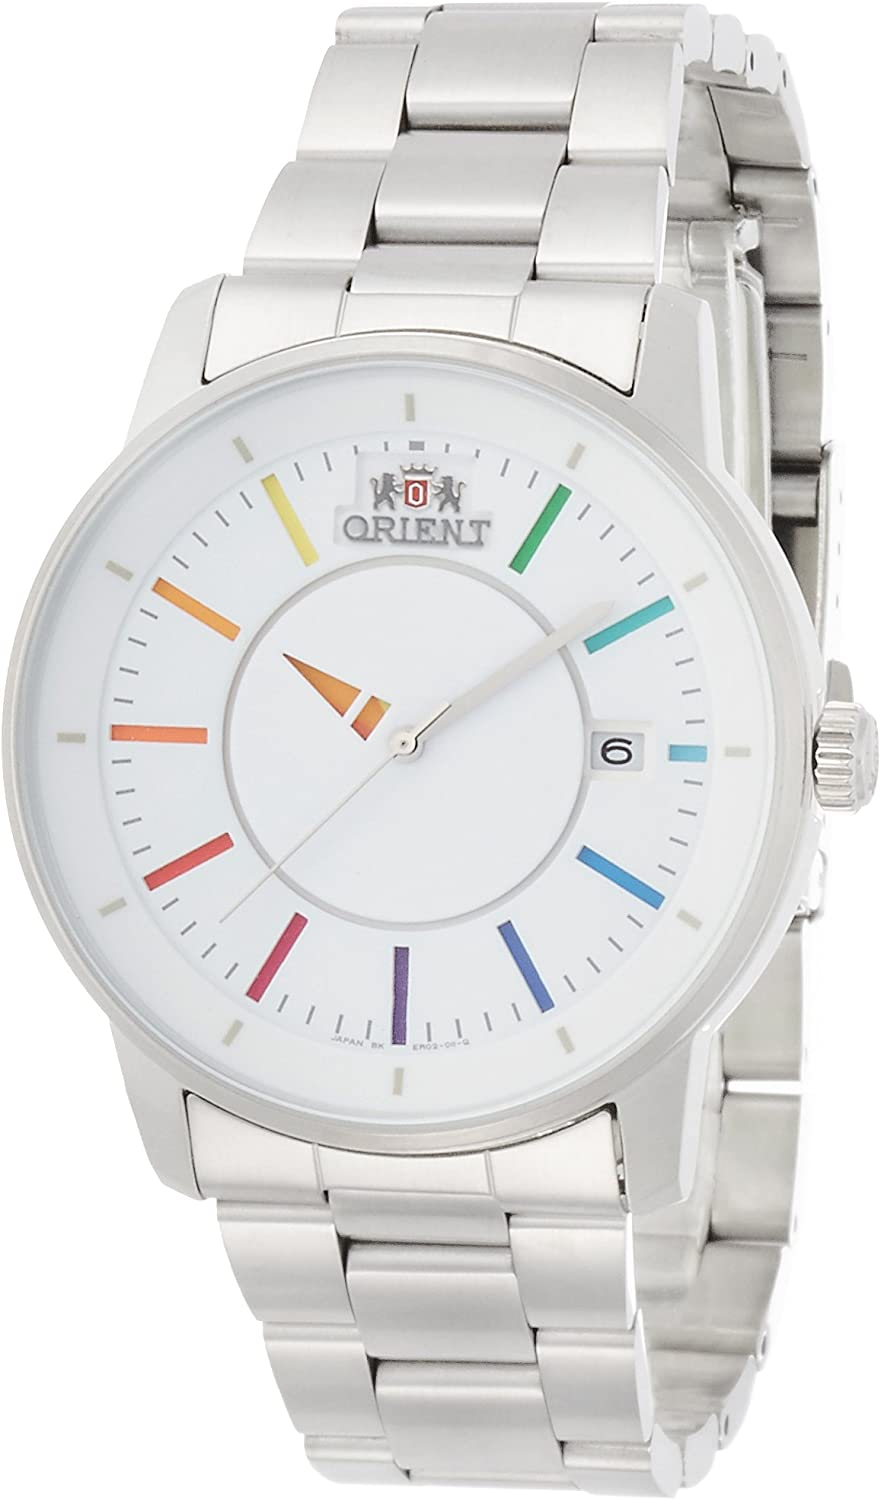 [Orient] Orient Watch Stylish and Smart Stylish and Smart Disk Disk White Rainbow Self-winding Wv0821er Men